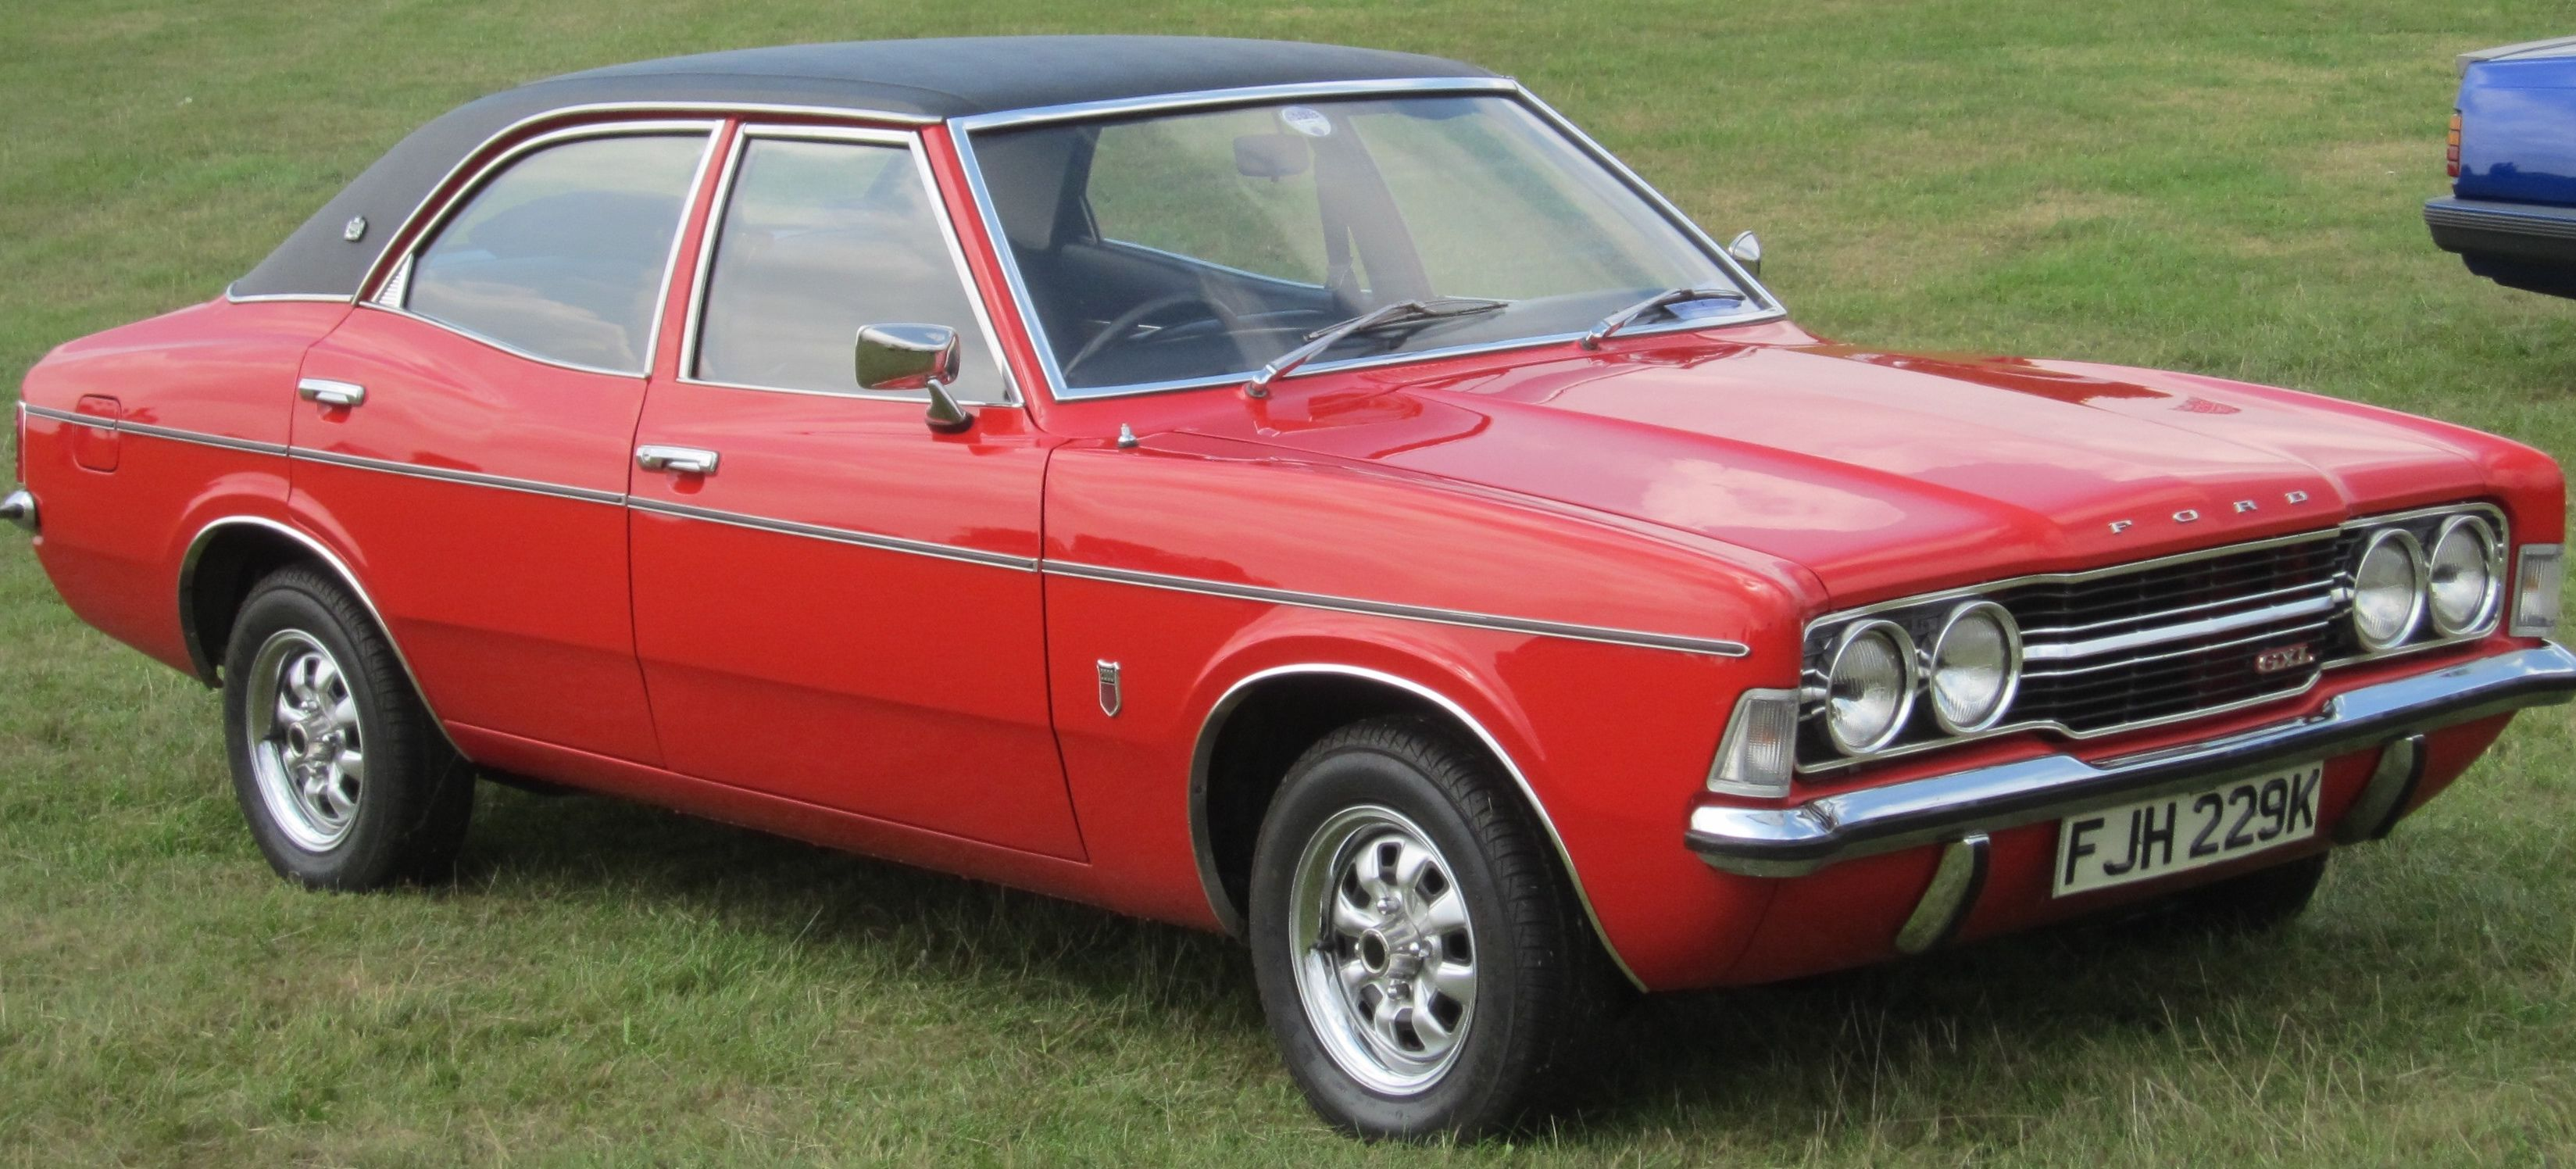 1972 Mk 3 Ford Cortina Gxl Ford Classic Cars Ford Old School Cars